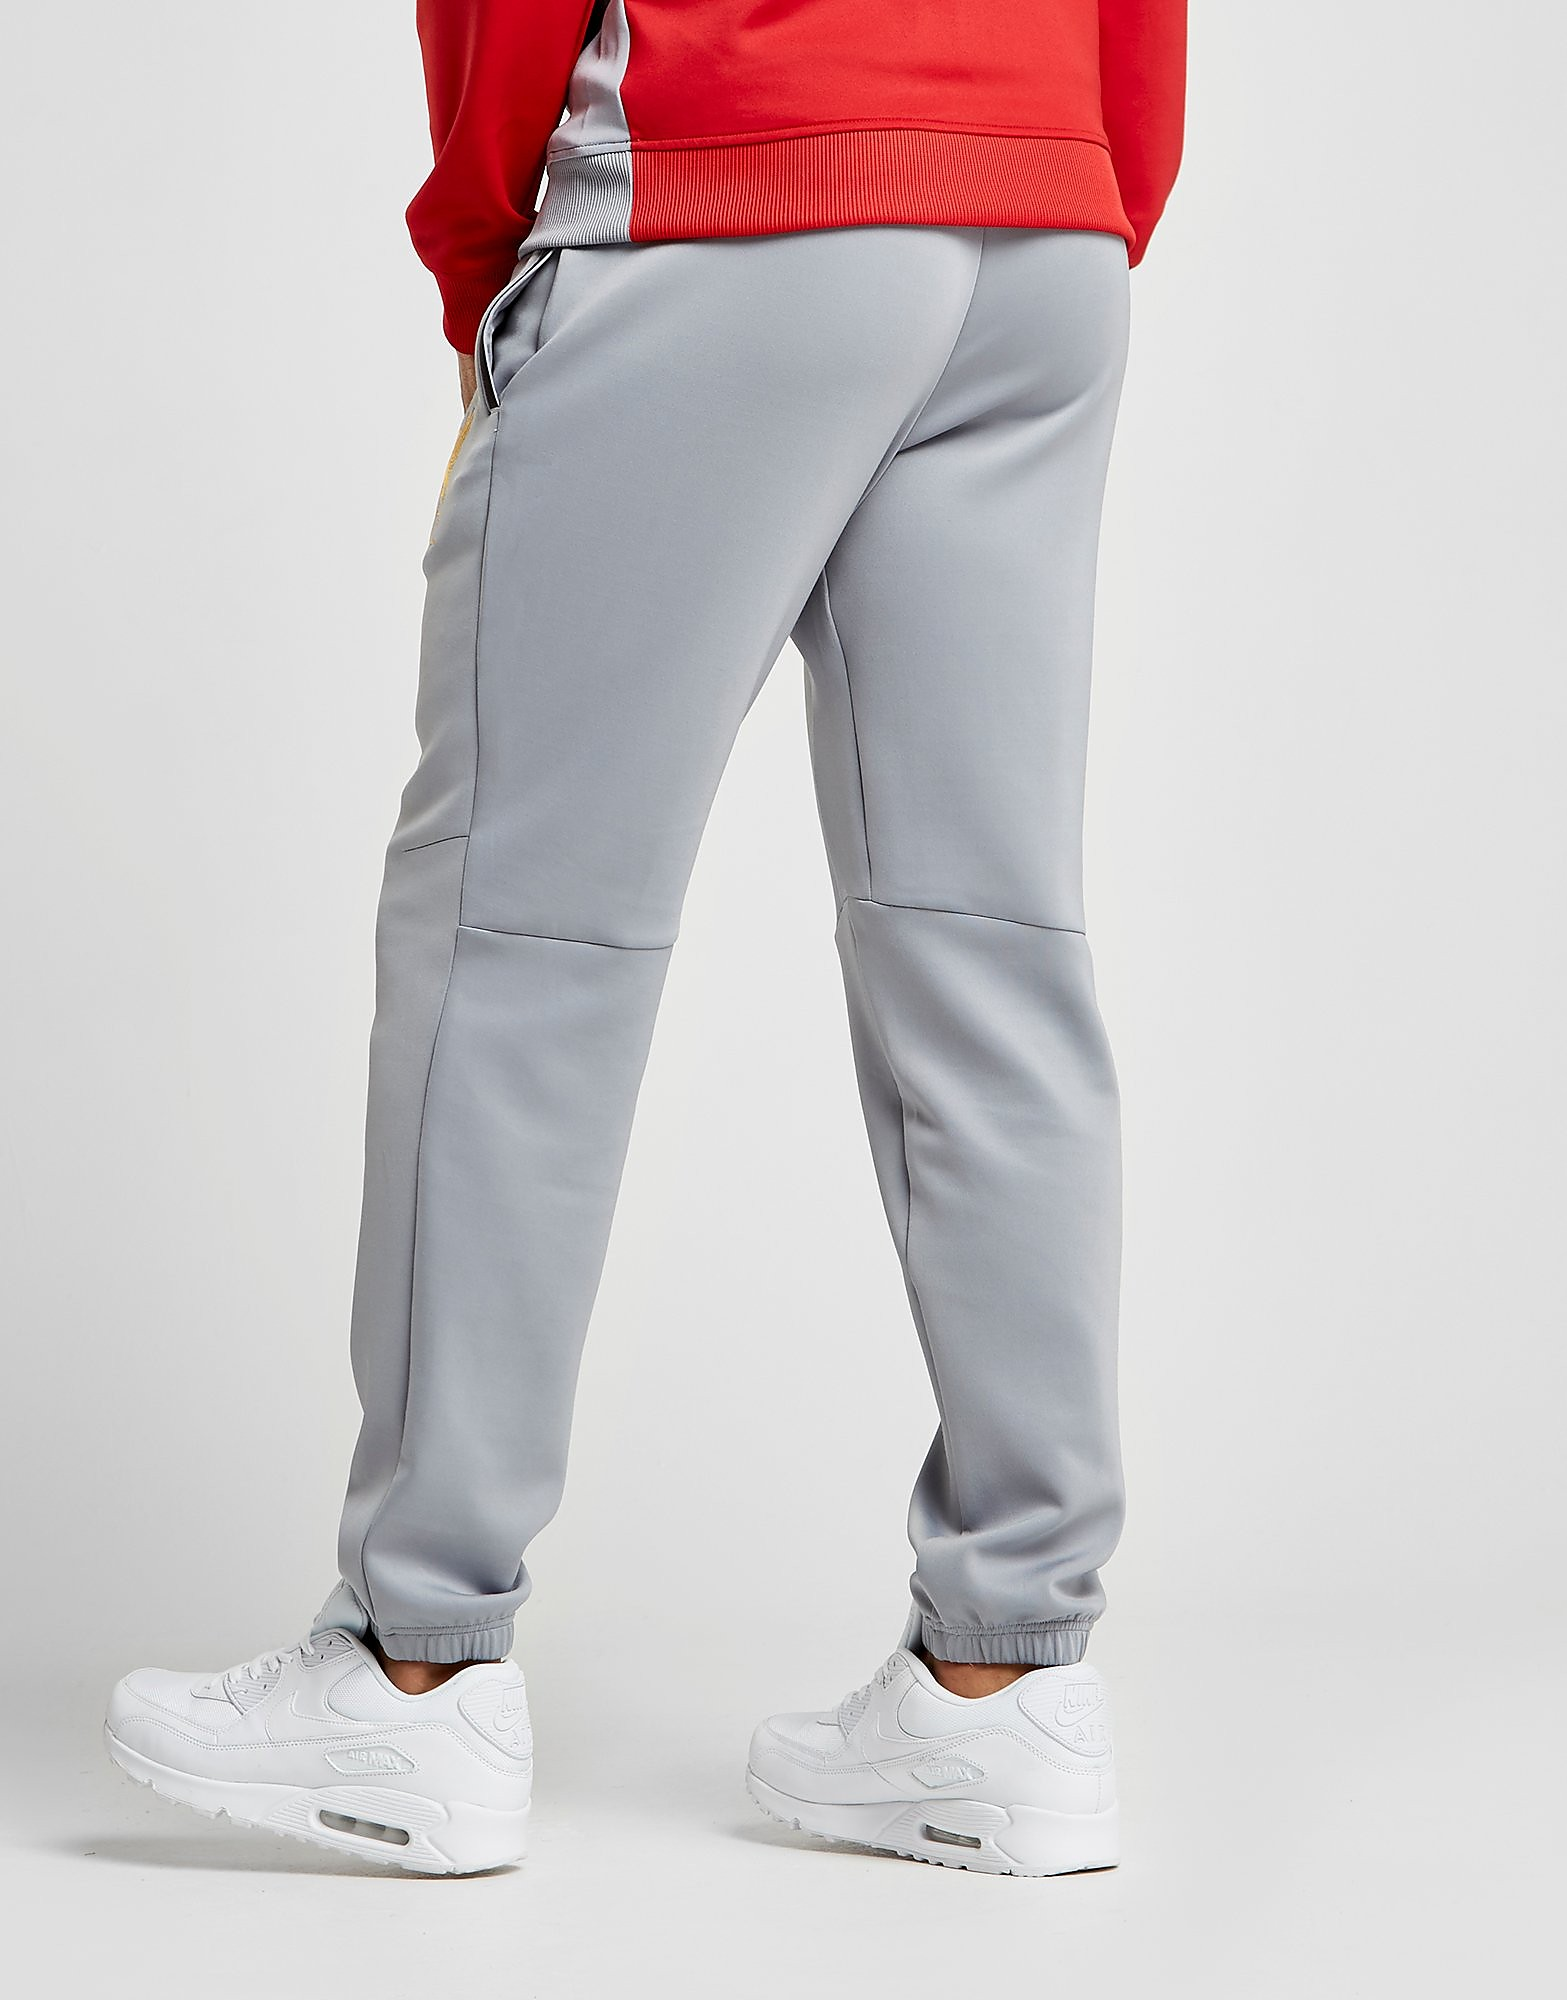 New Balance 247 Liverpool FC Pants